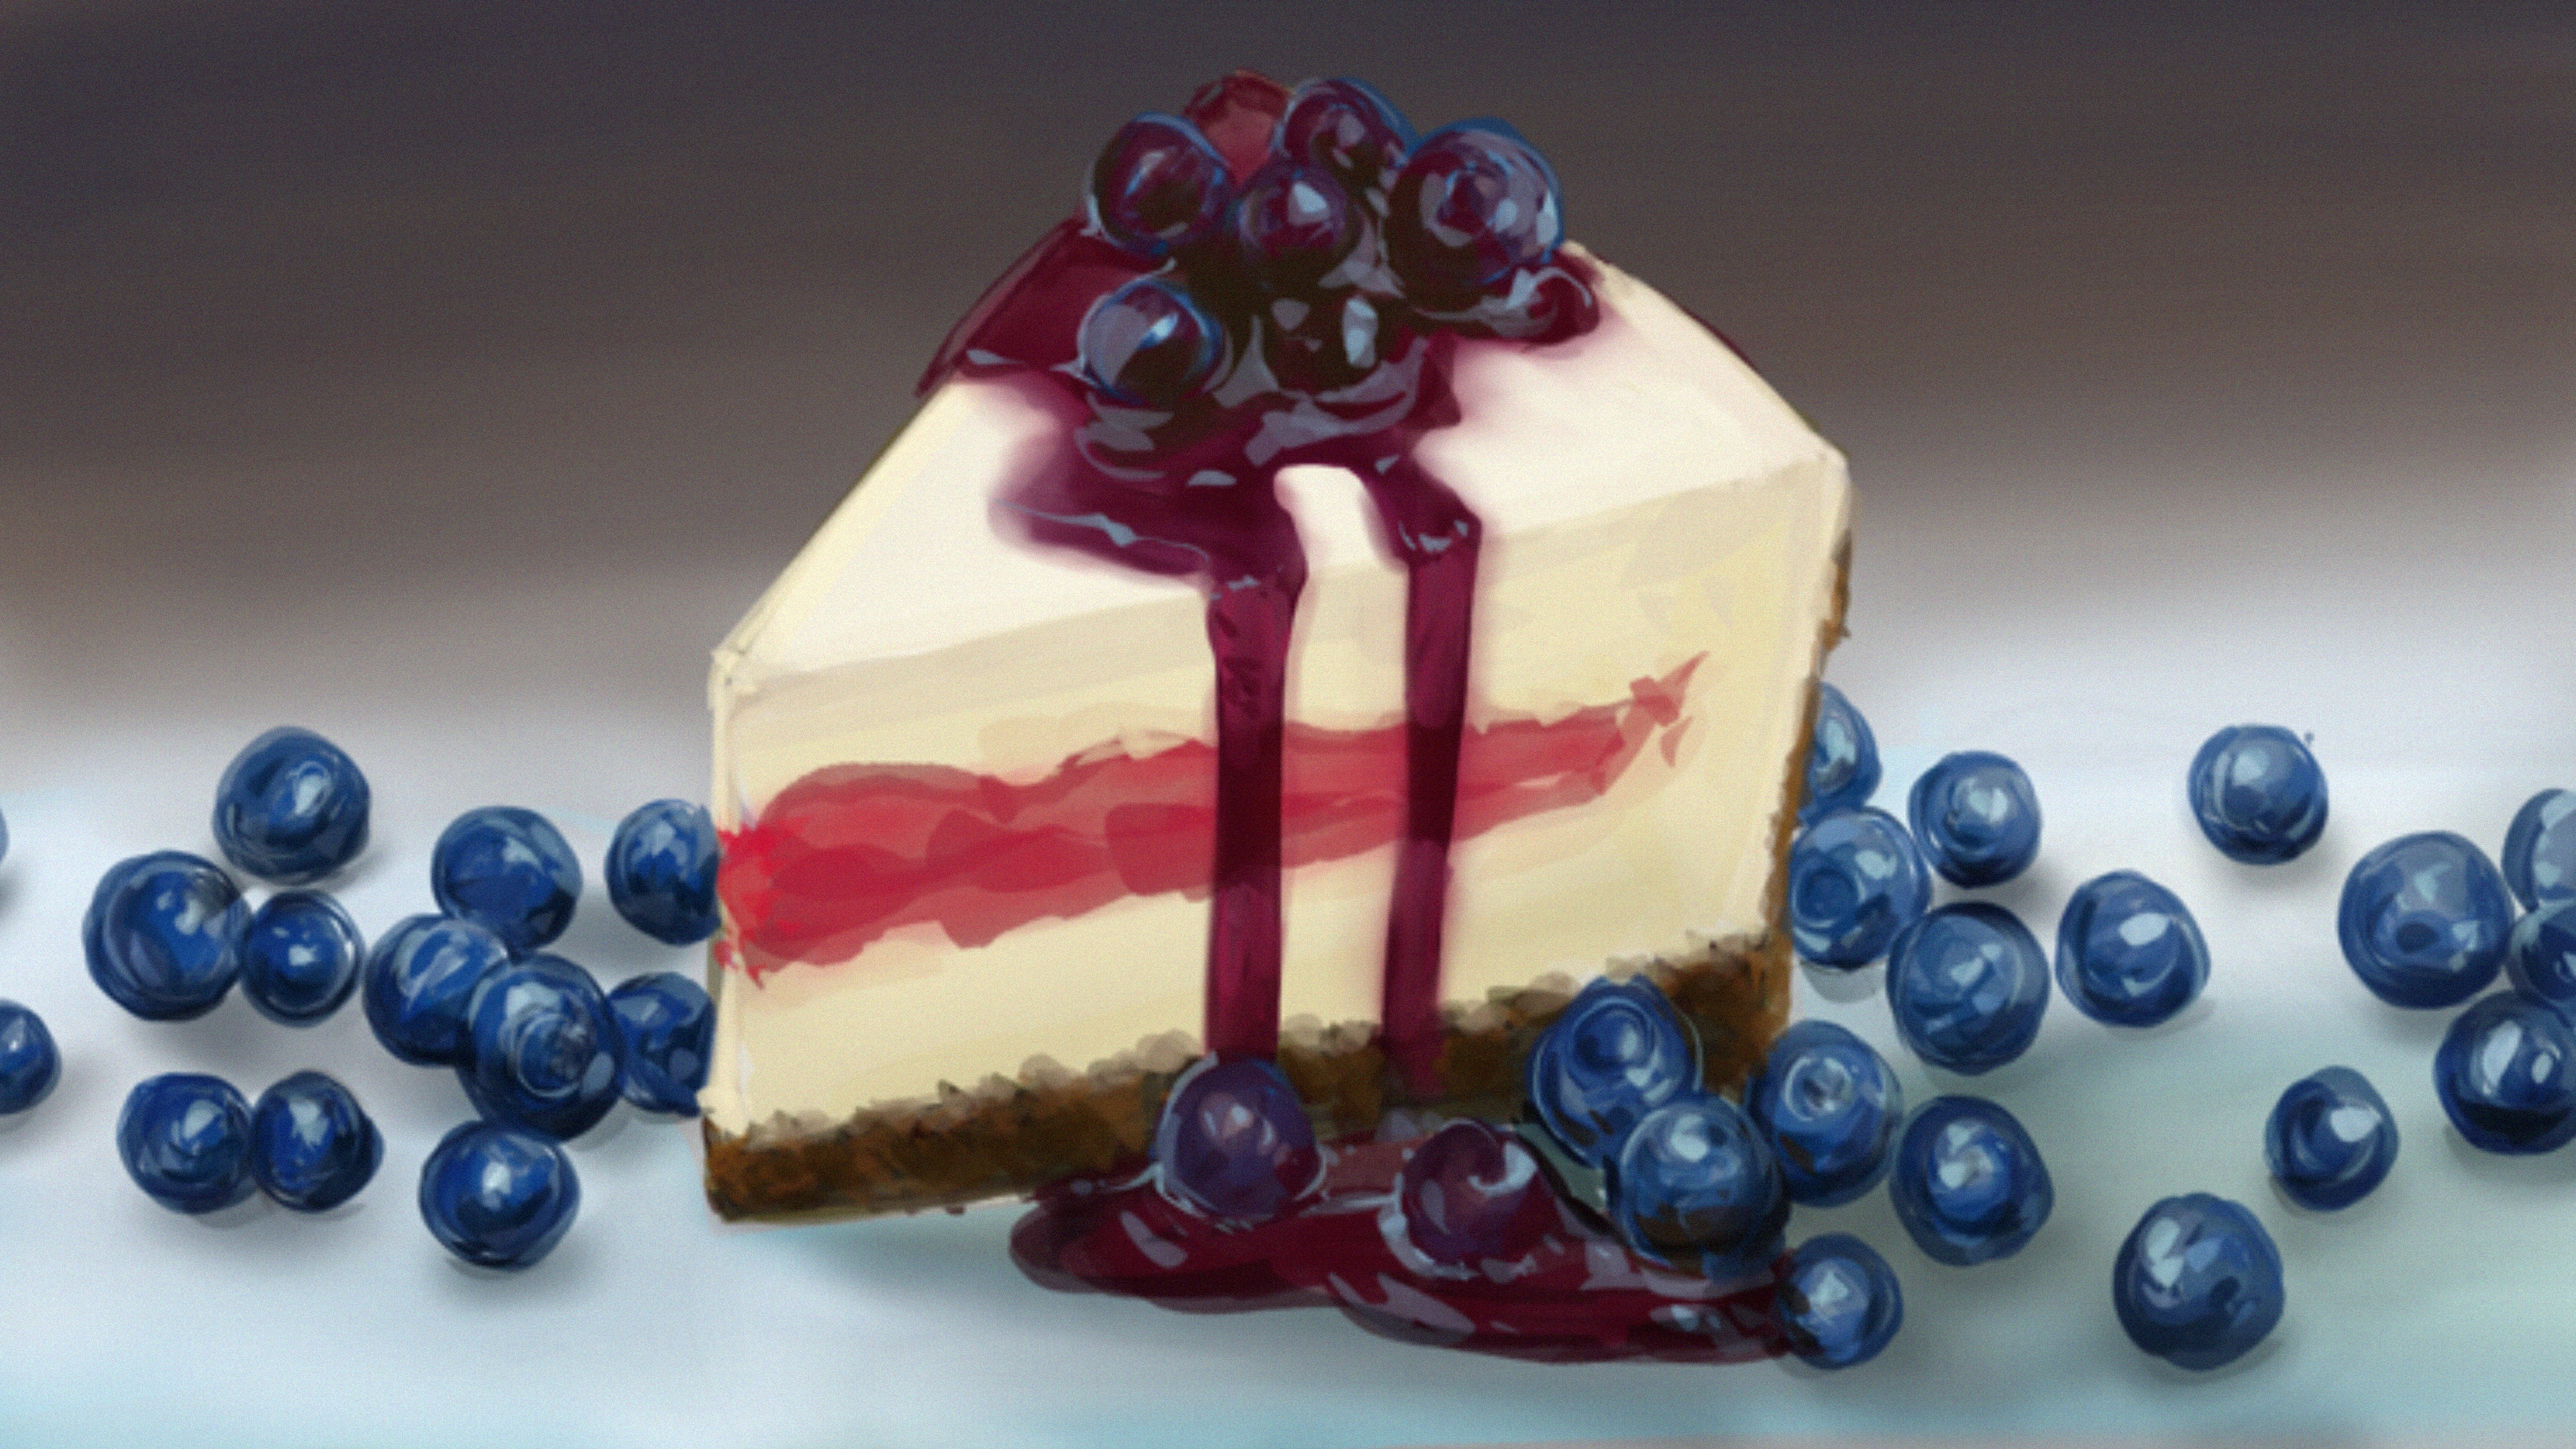 Cake drawing/painting study in procreate